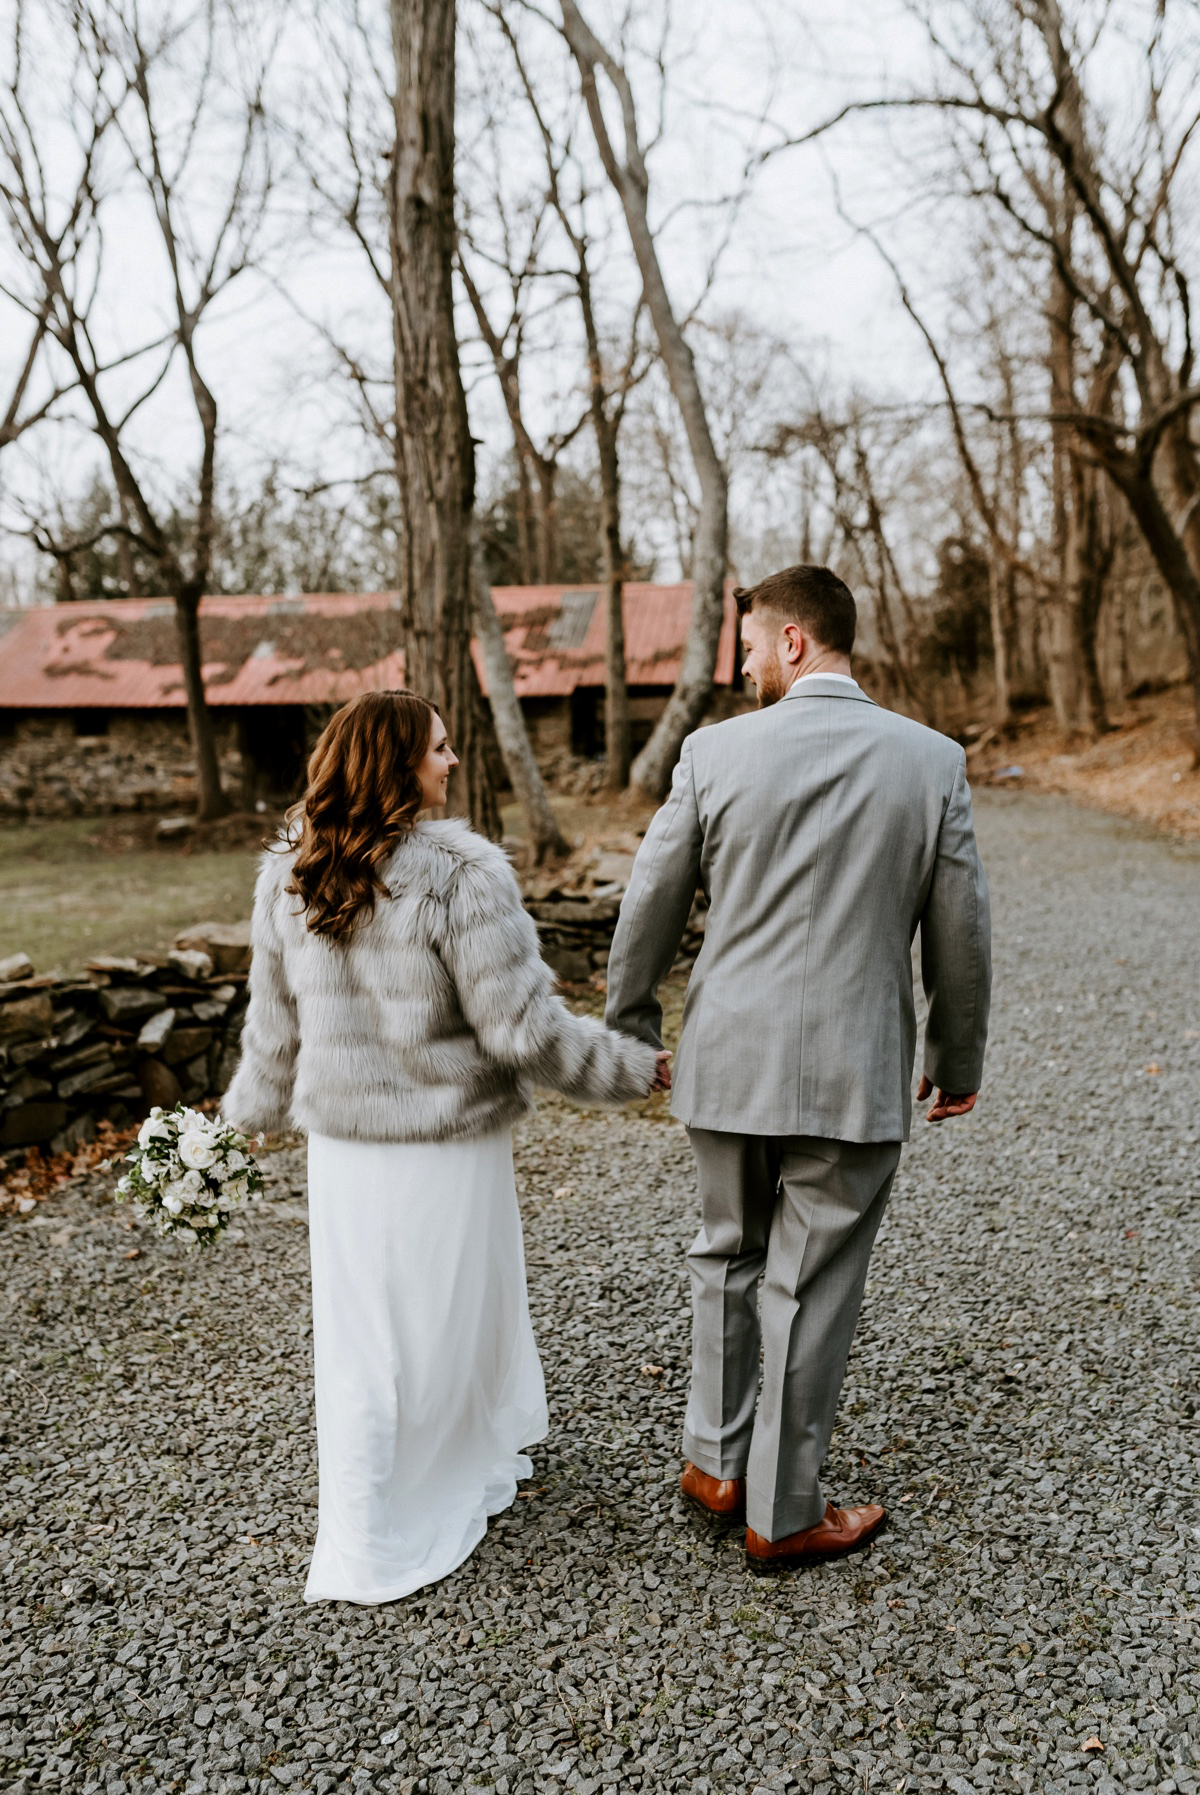 47 The Inn At Glencairn Winter Wedding Inspiration Winter Elopement Princeton Wedding Photographer NJ Wedding Photographer